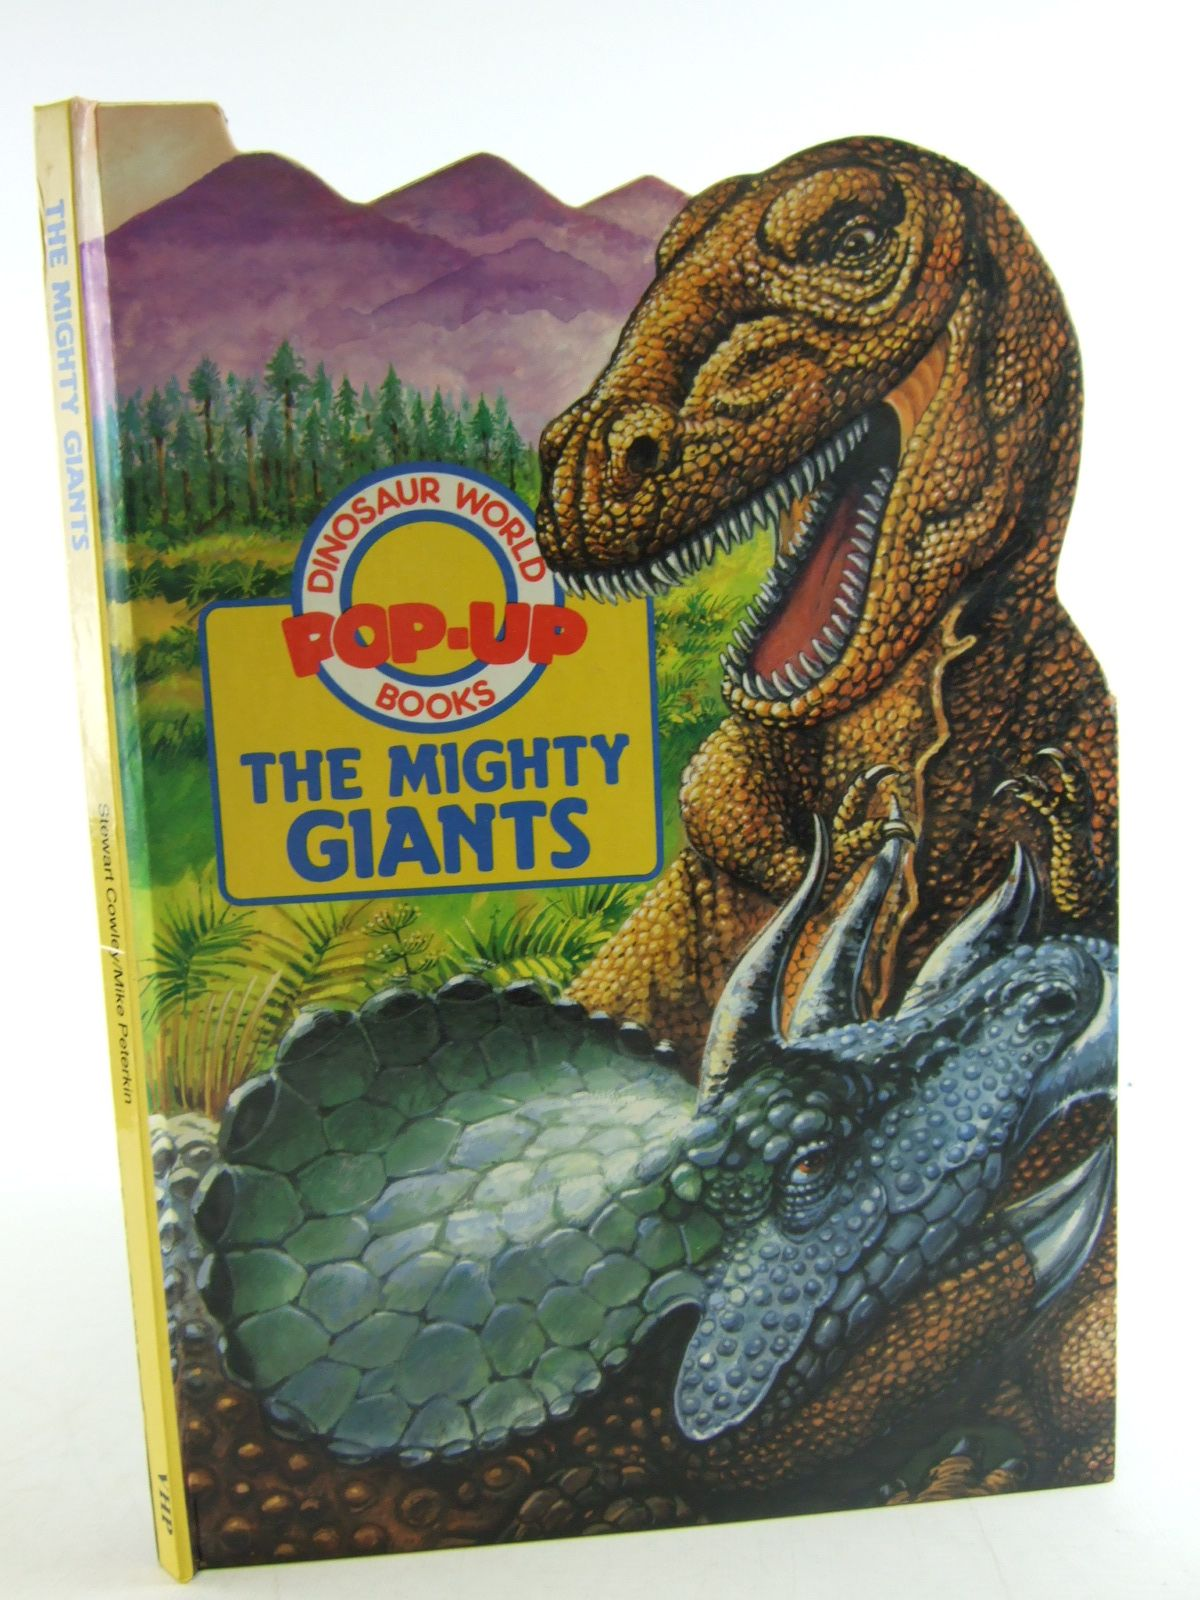 Photo of THE MIGHTY GIANTS DINOSAUR WORLD POP-UP BOOKS written by Cowley, Stewart illustrated by Peterkin, Mike published by Victoria House Publishing (STOCK CODE: 1806510)  for sale by Stella & Rose's Books